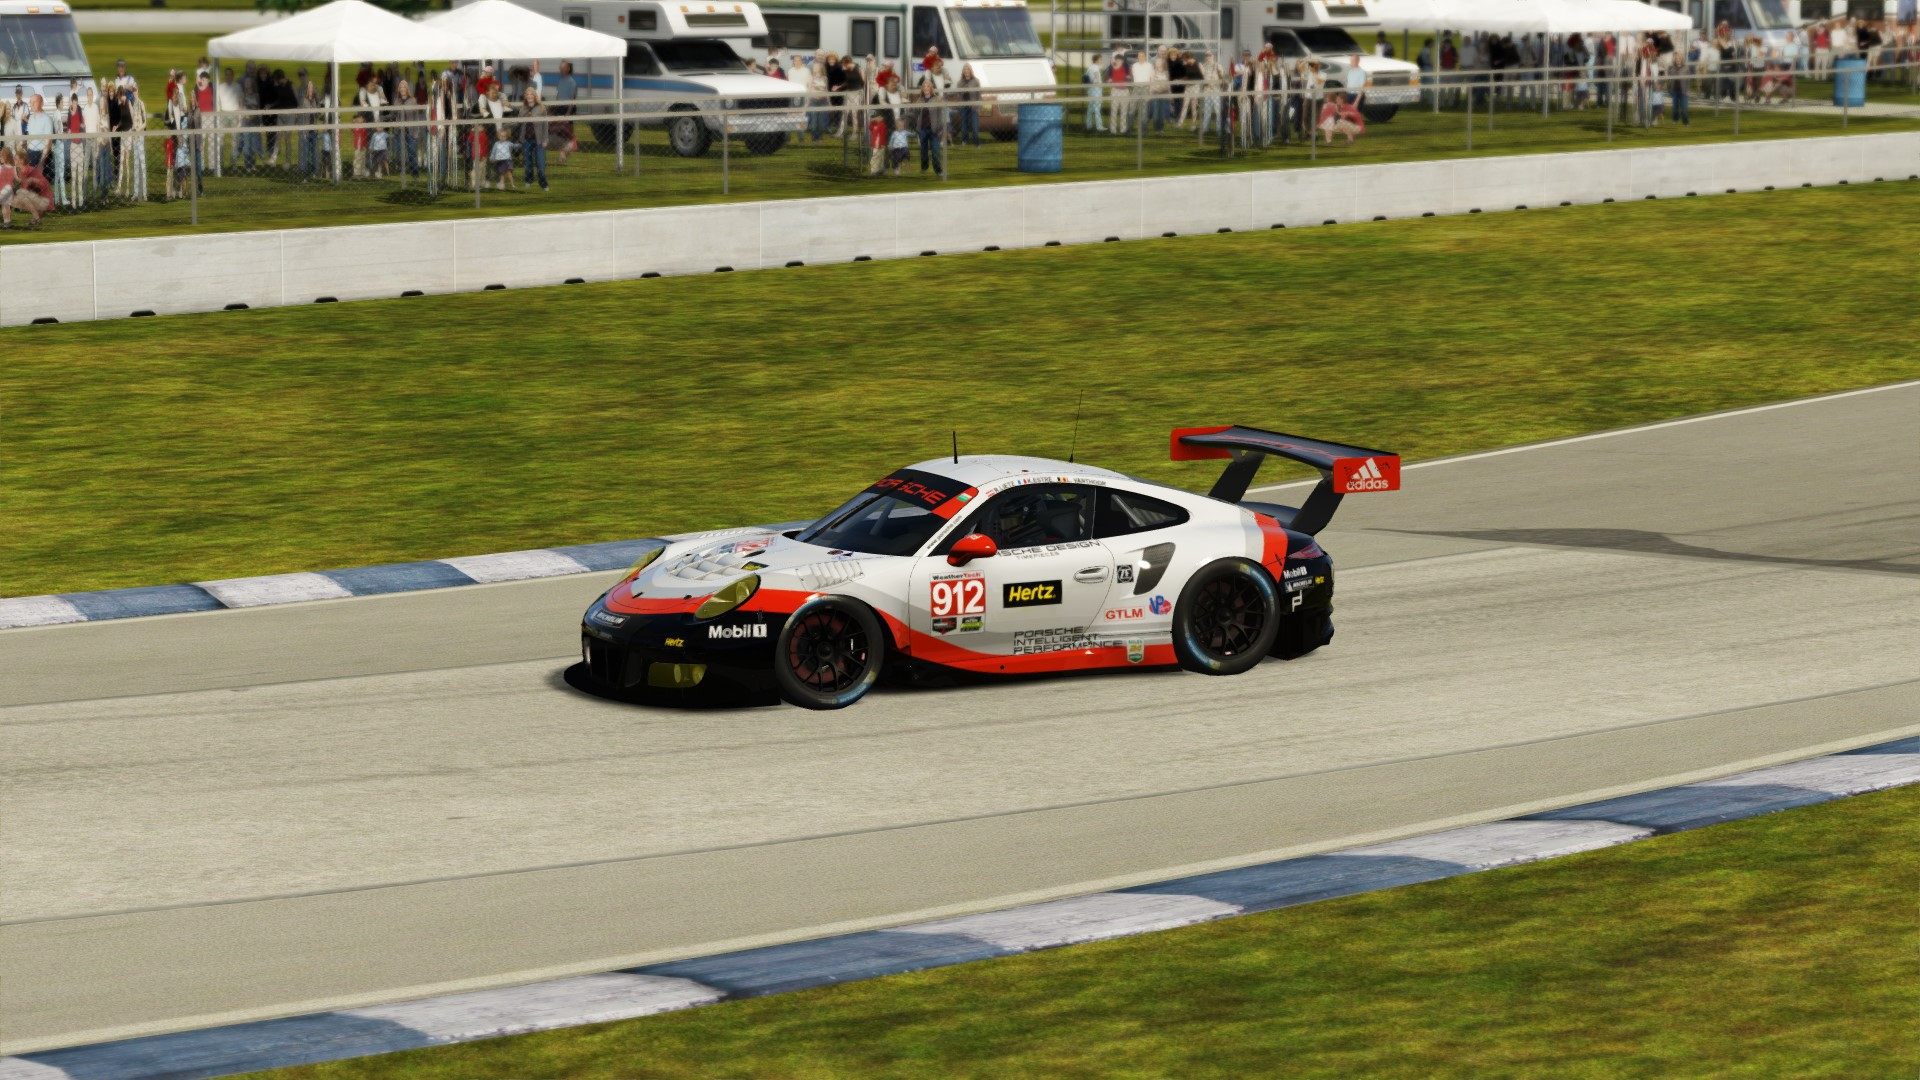 Screenshot_ks_porsche_911_gt3_r_2016_sebring_19-3-117-20-20-49.jpg